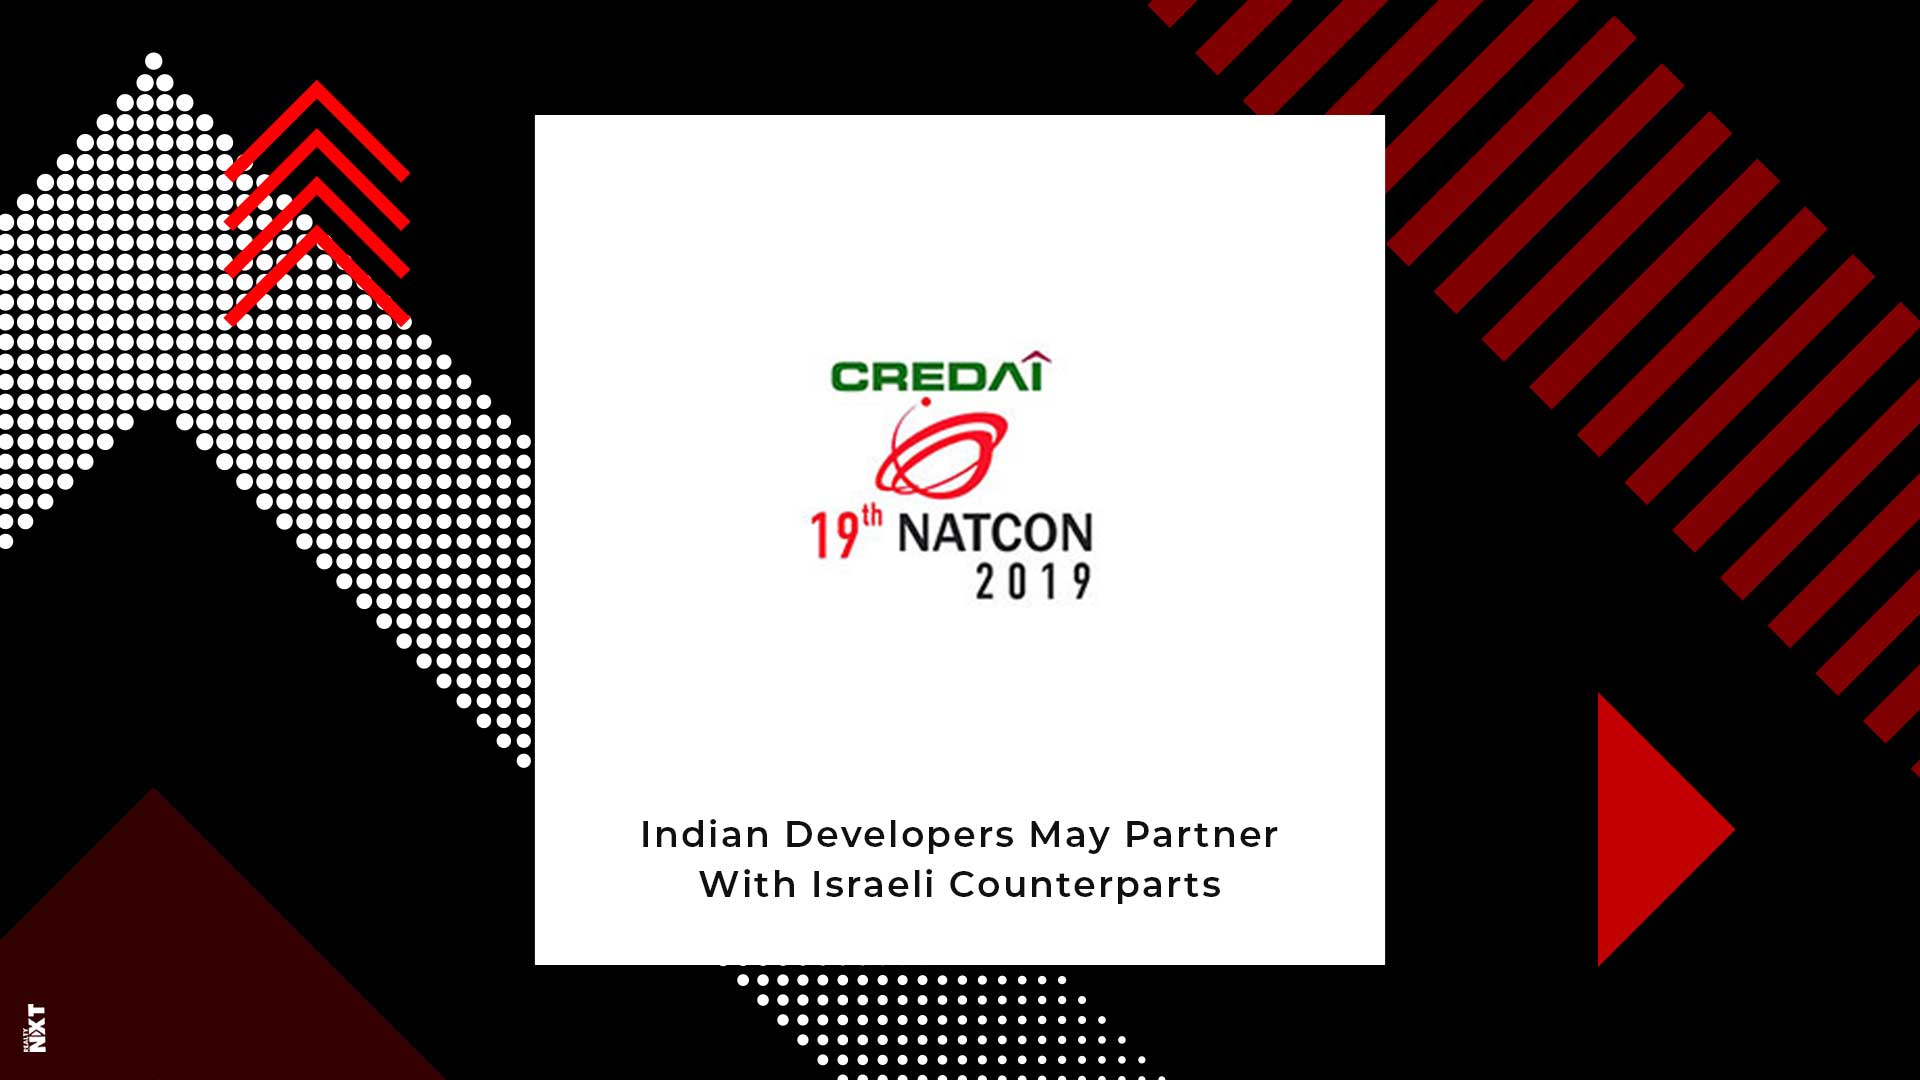 CREDAI Conducts NATCON At Israel